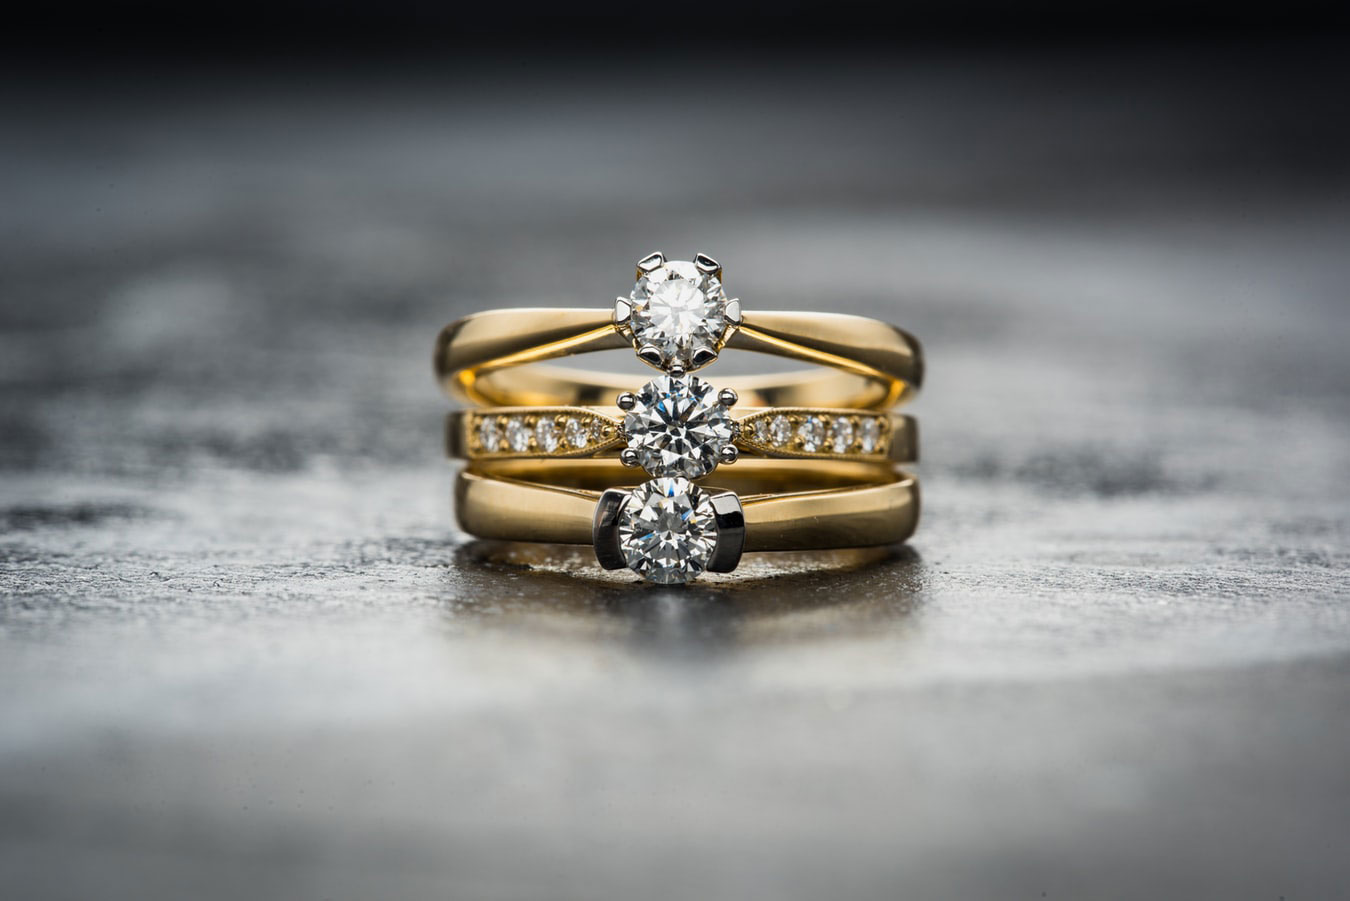 Ring | What Do Karats Mean When Talking About Gold & Diamonds?